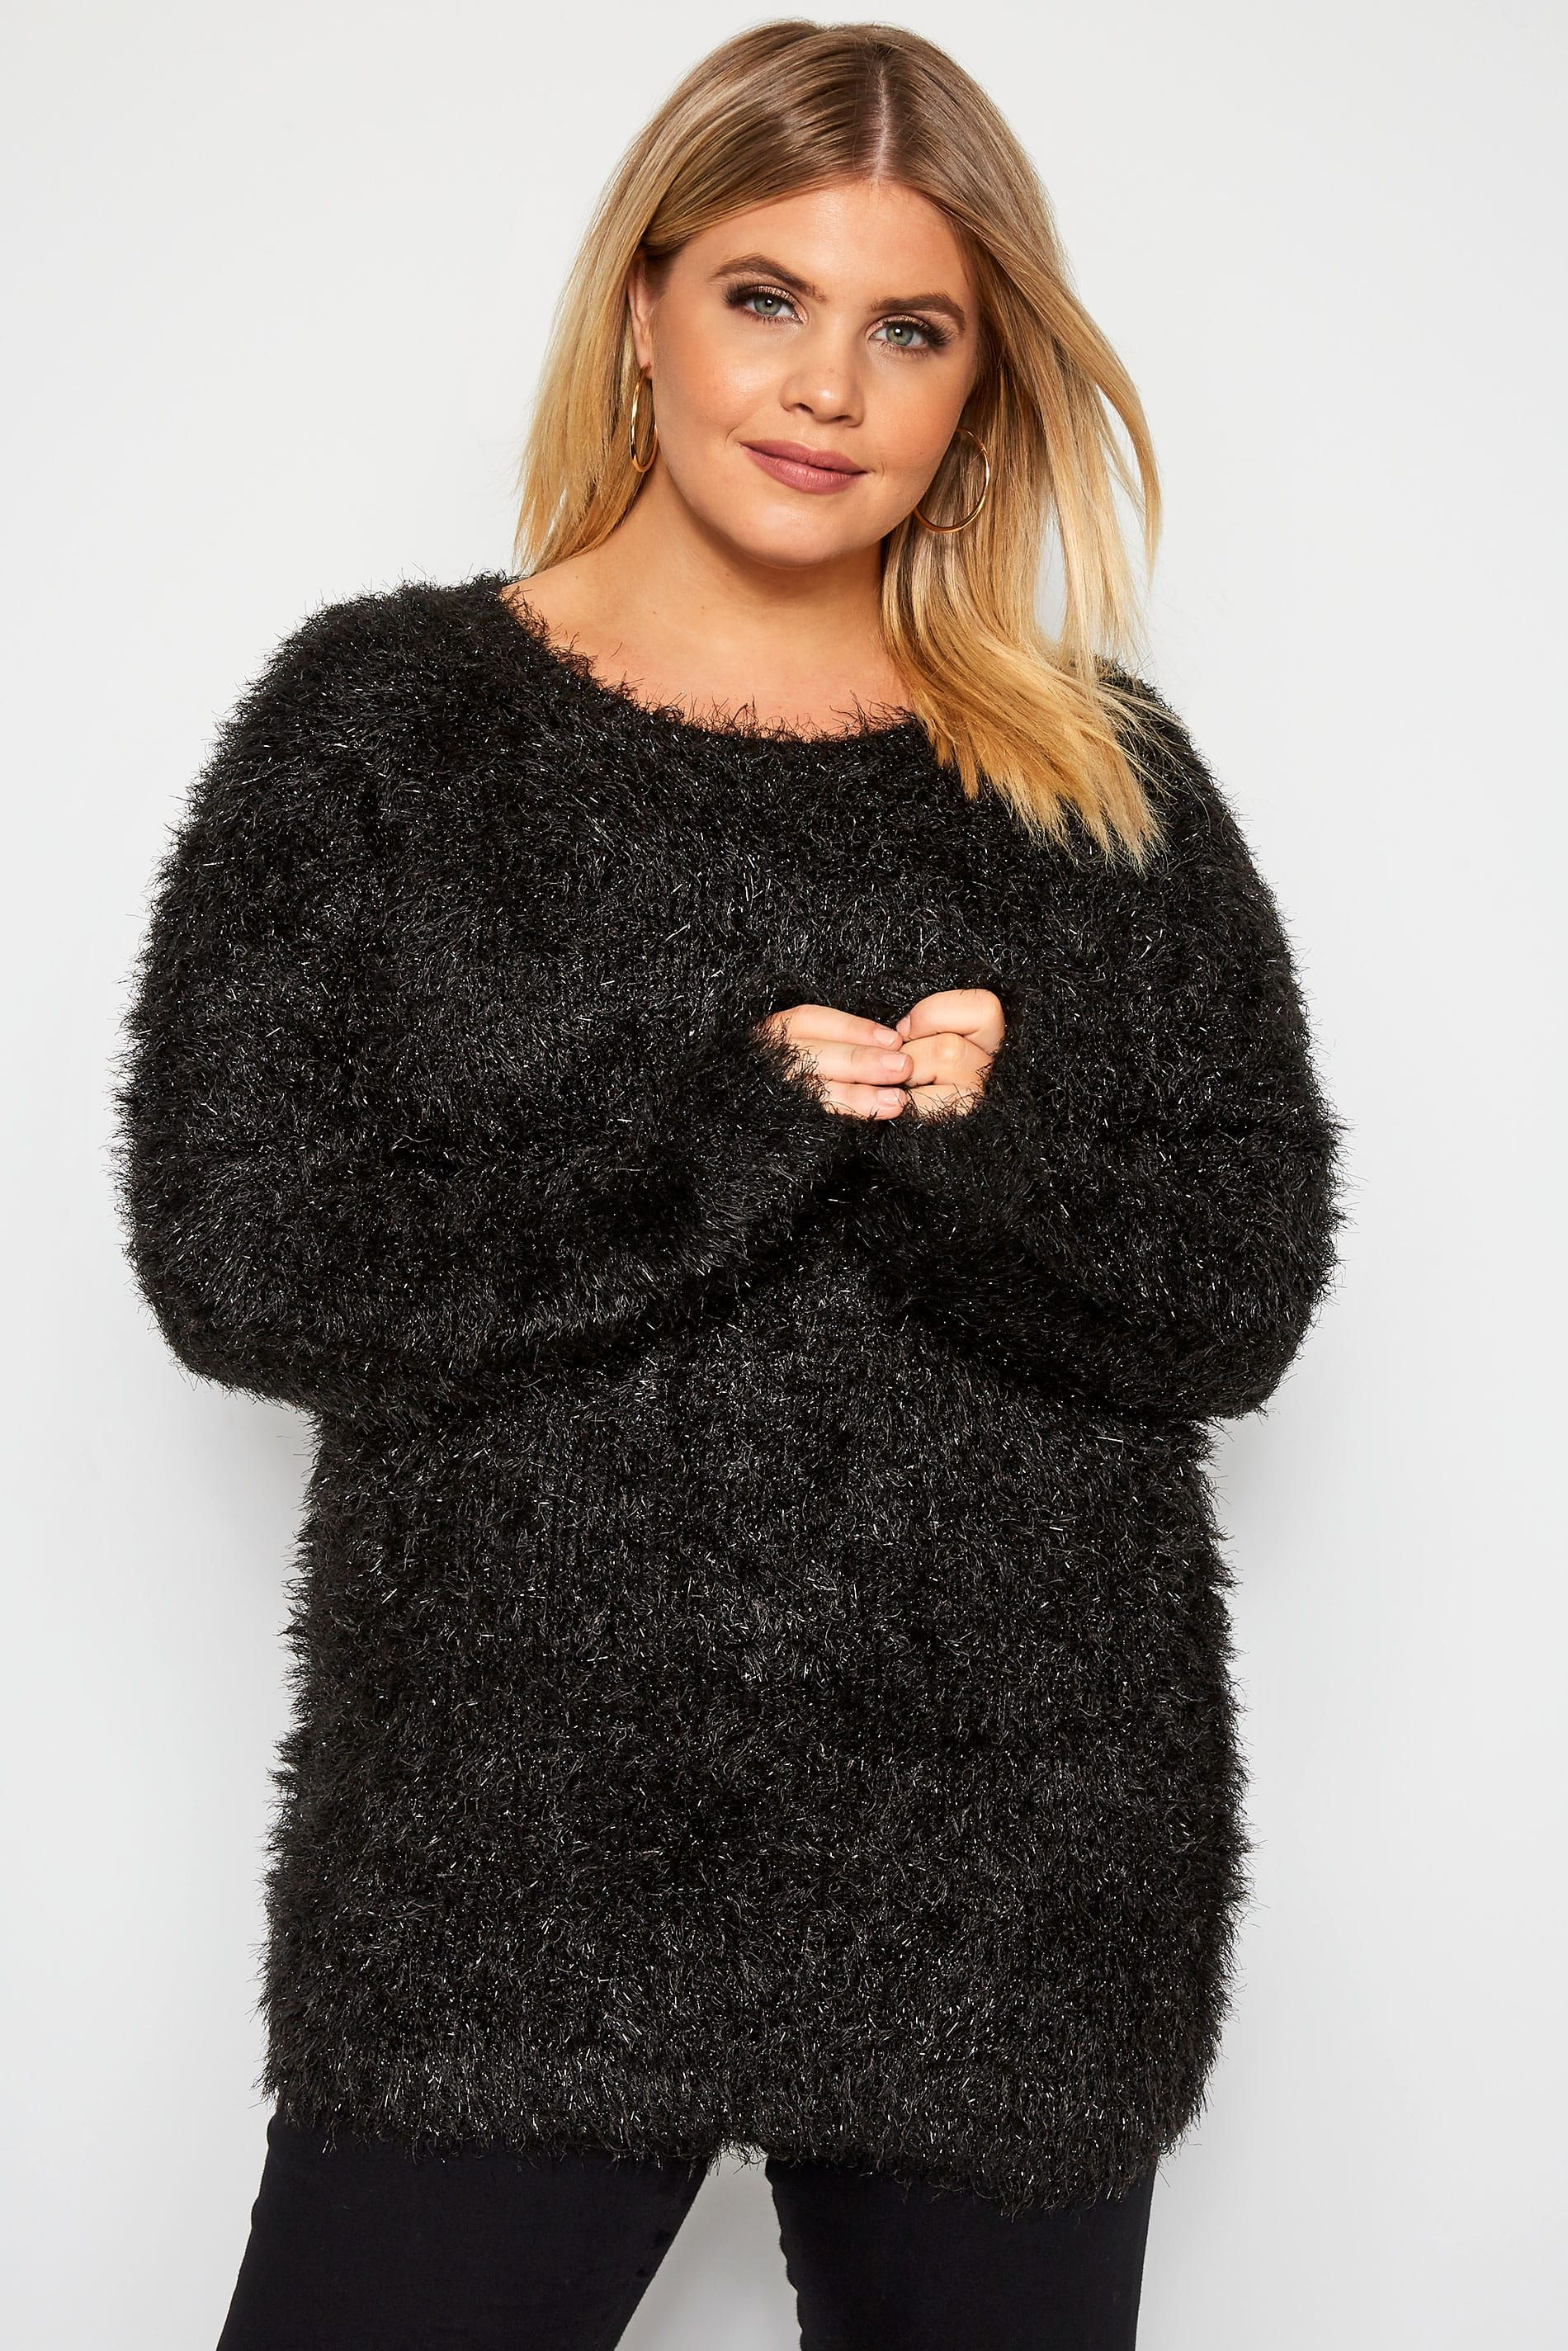 Yours Clothing Women/'s Plus Size Black Metallic Tinsel Knitted Jumper